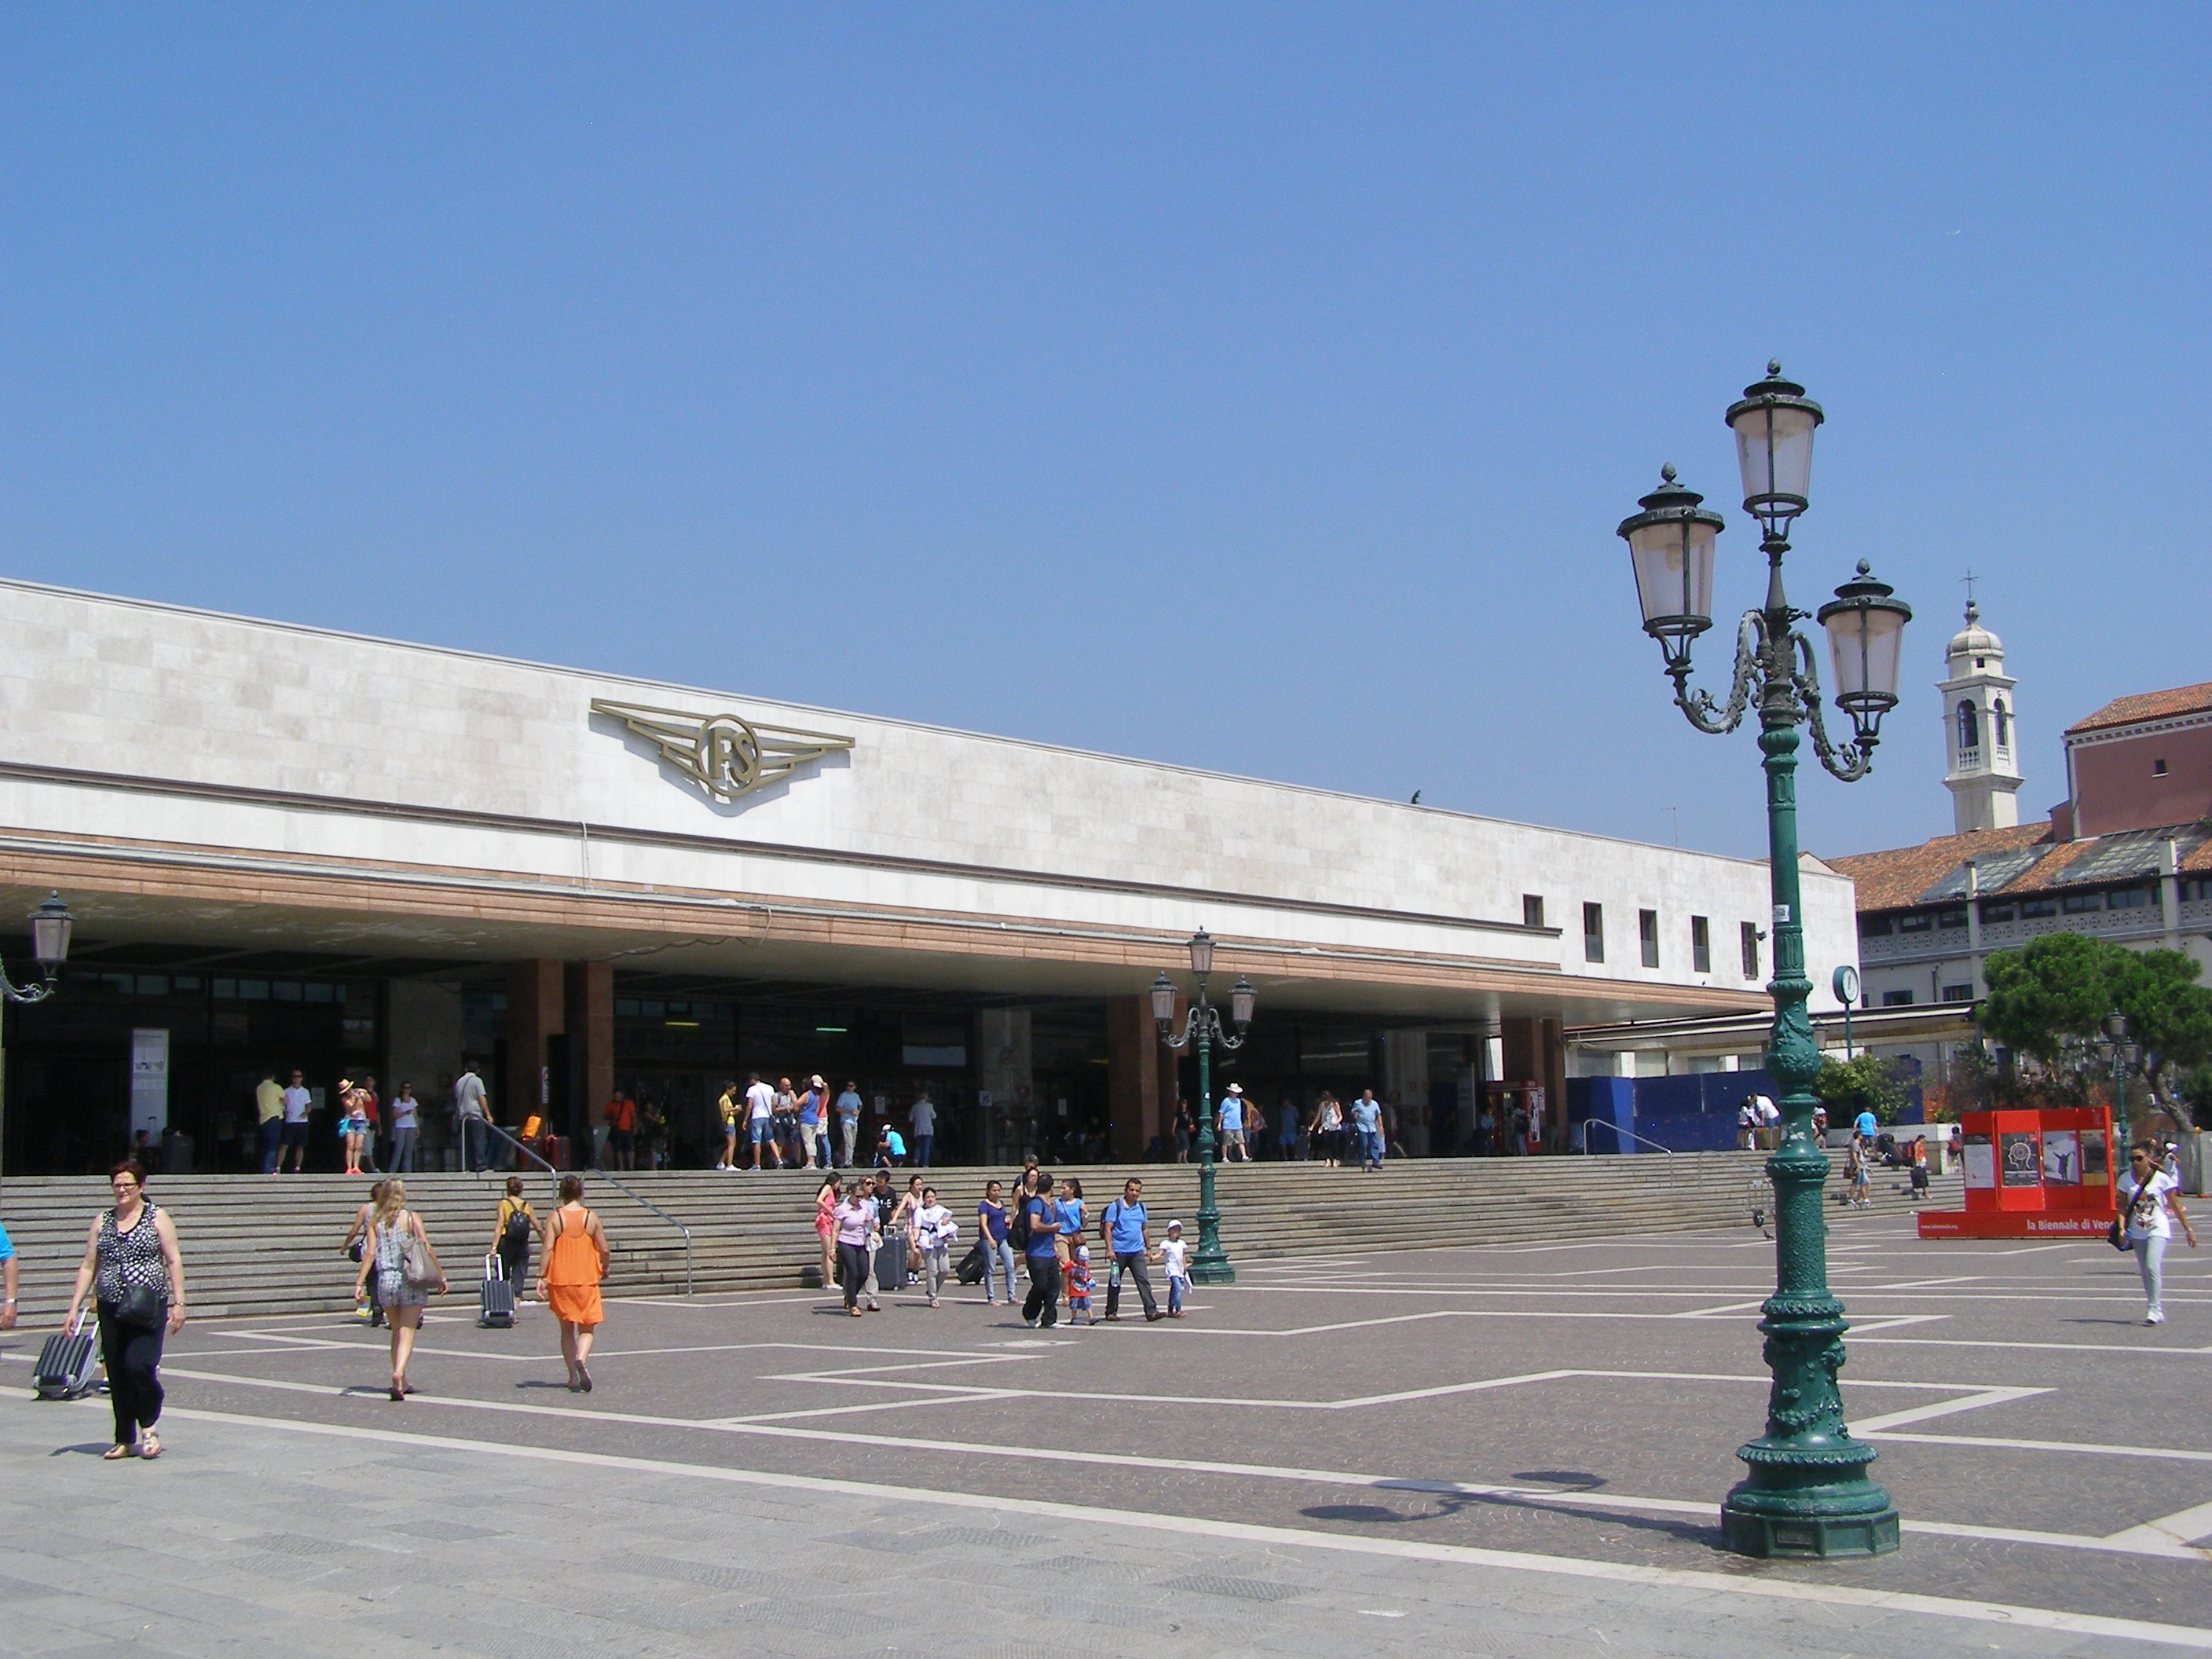 Venice train station Getting to Venice by rail